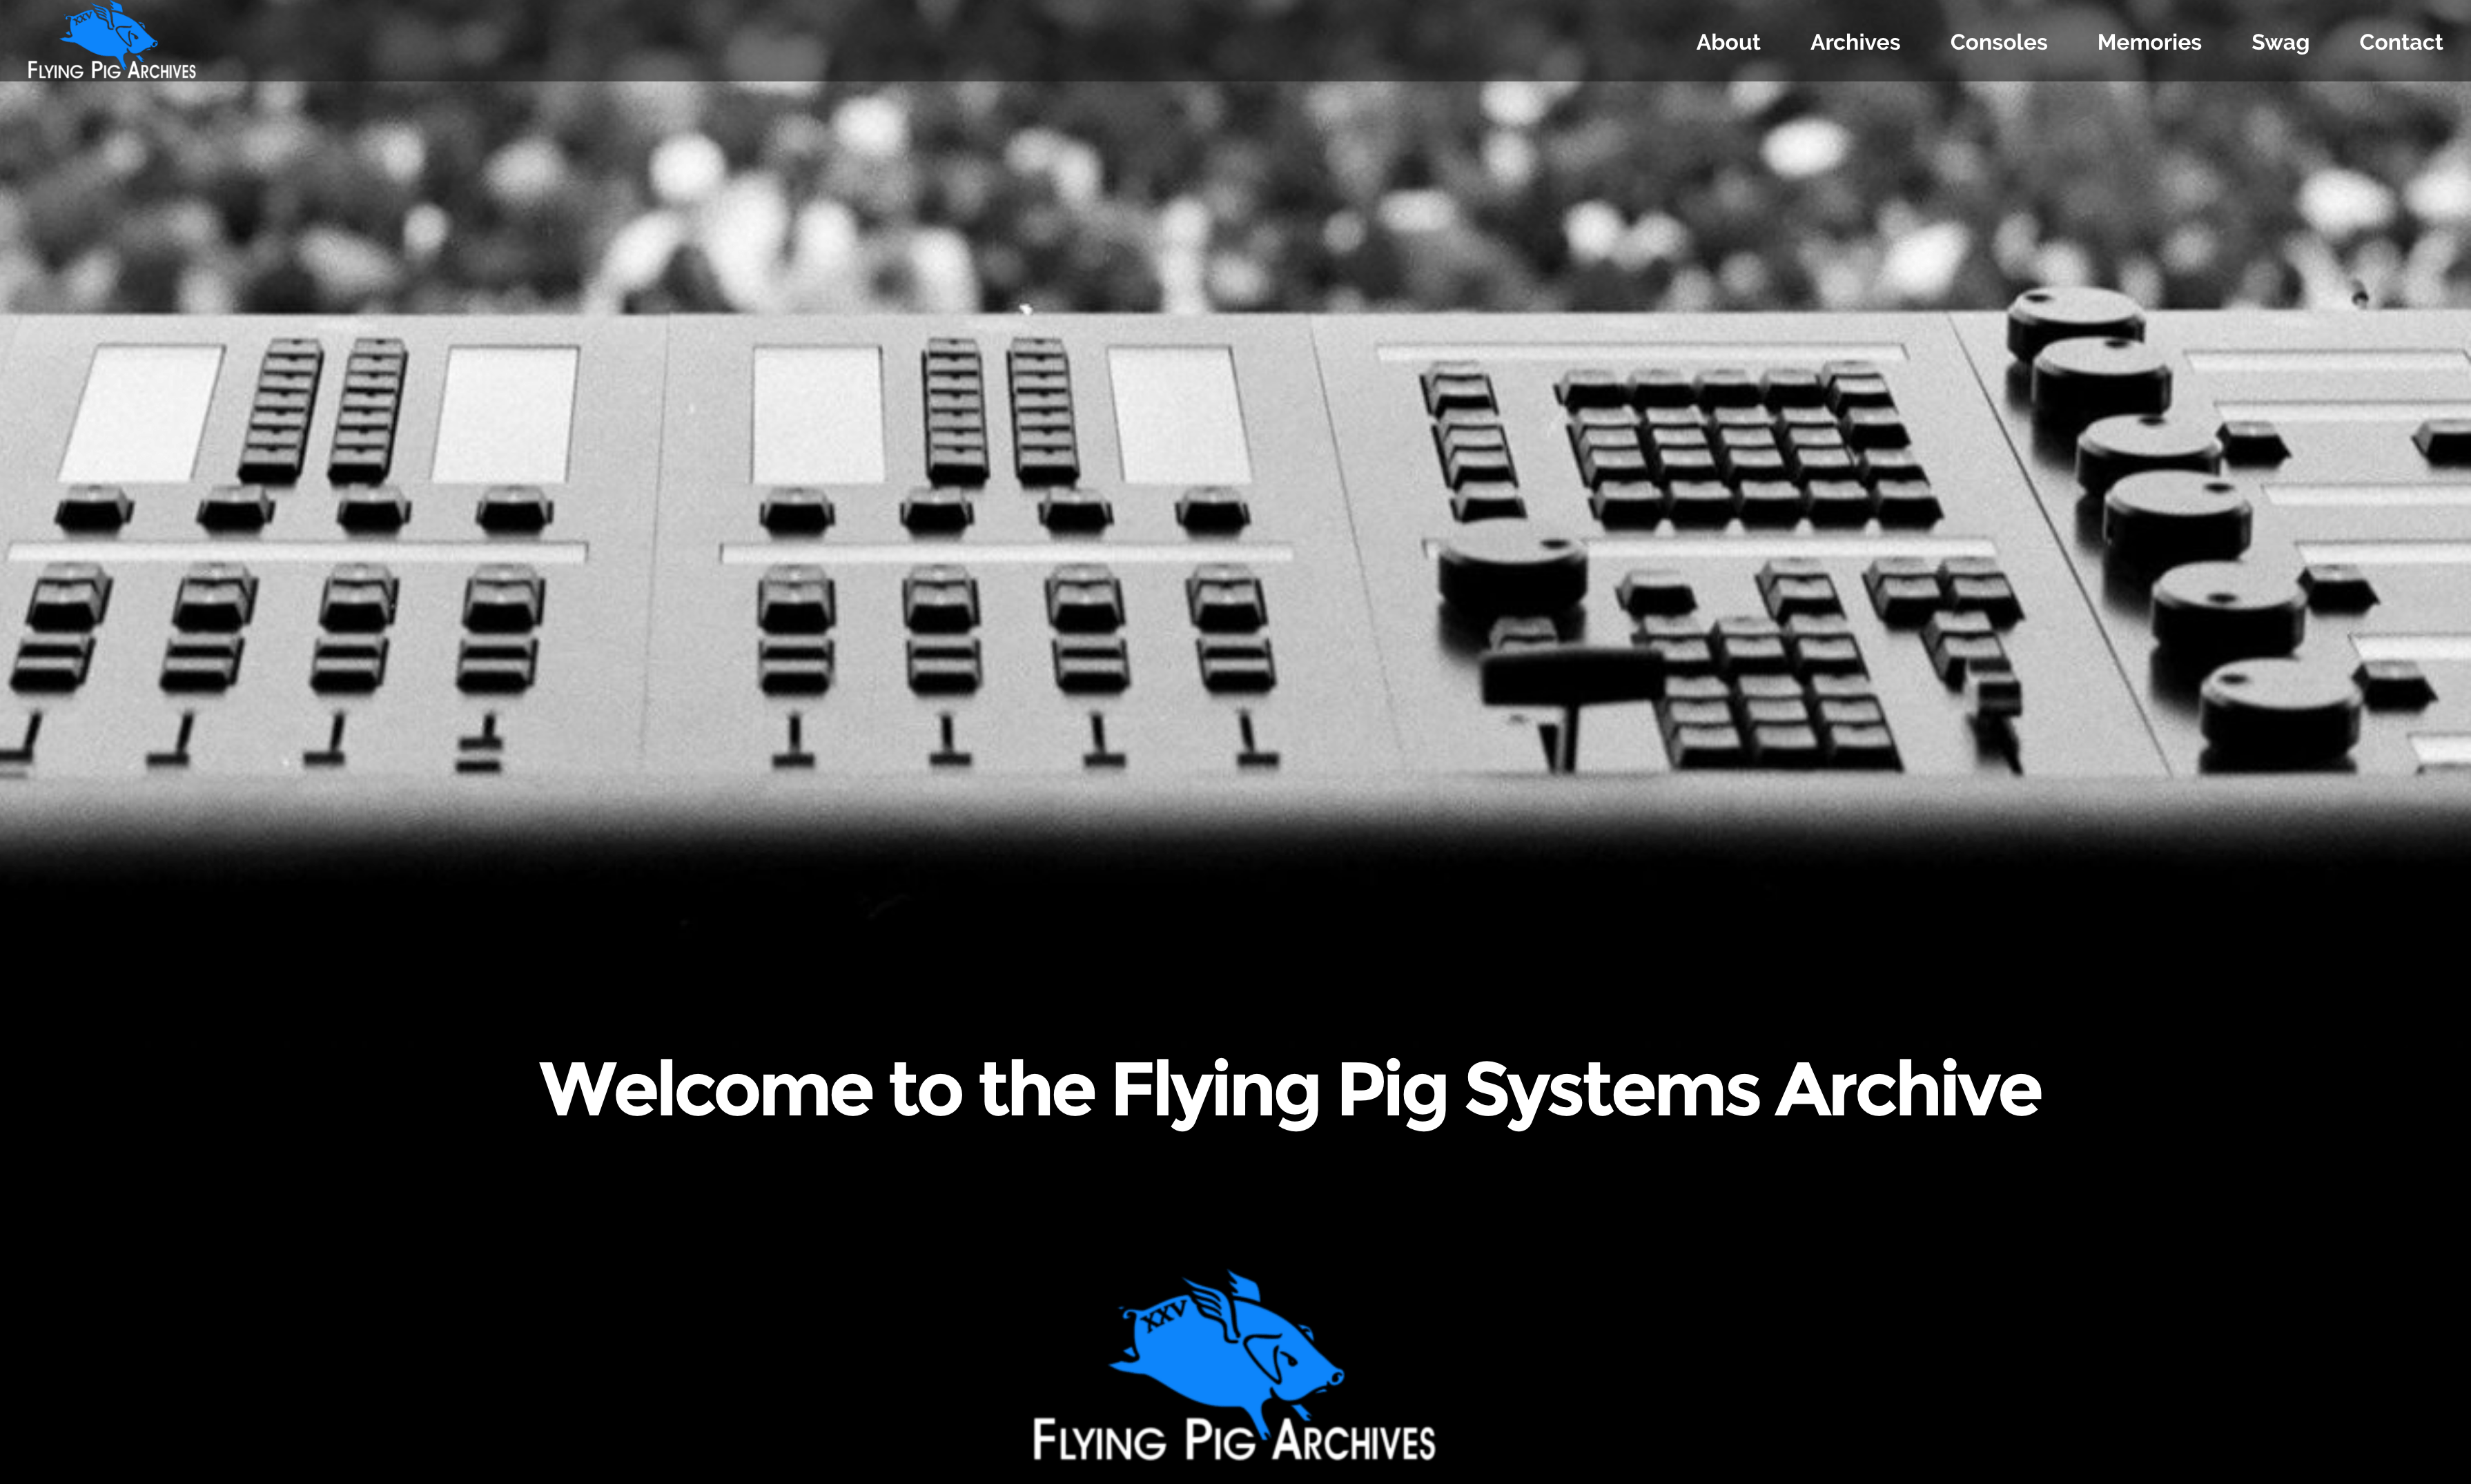 Flying Pig Systems Archive